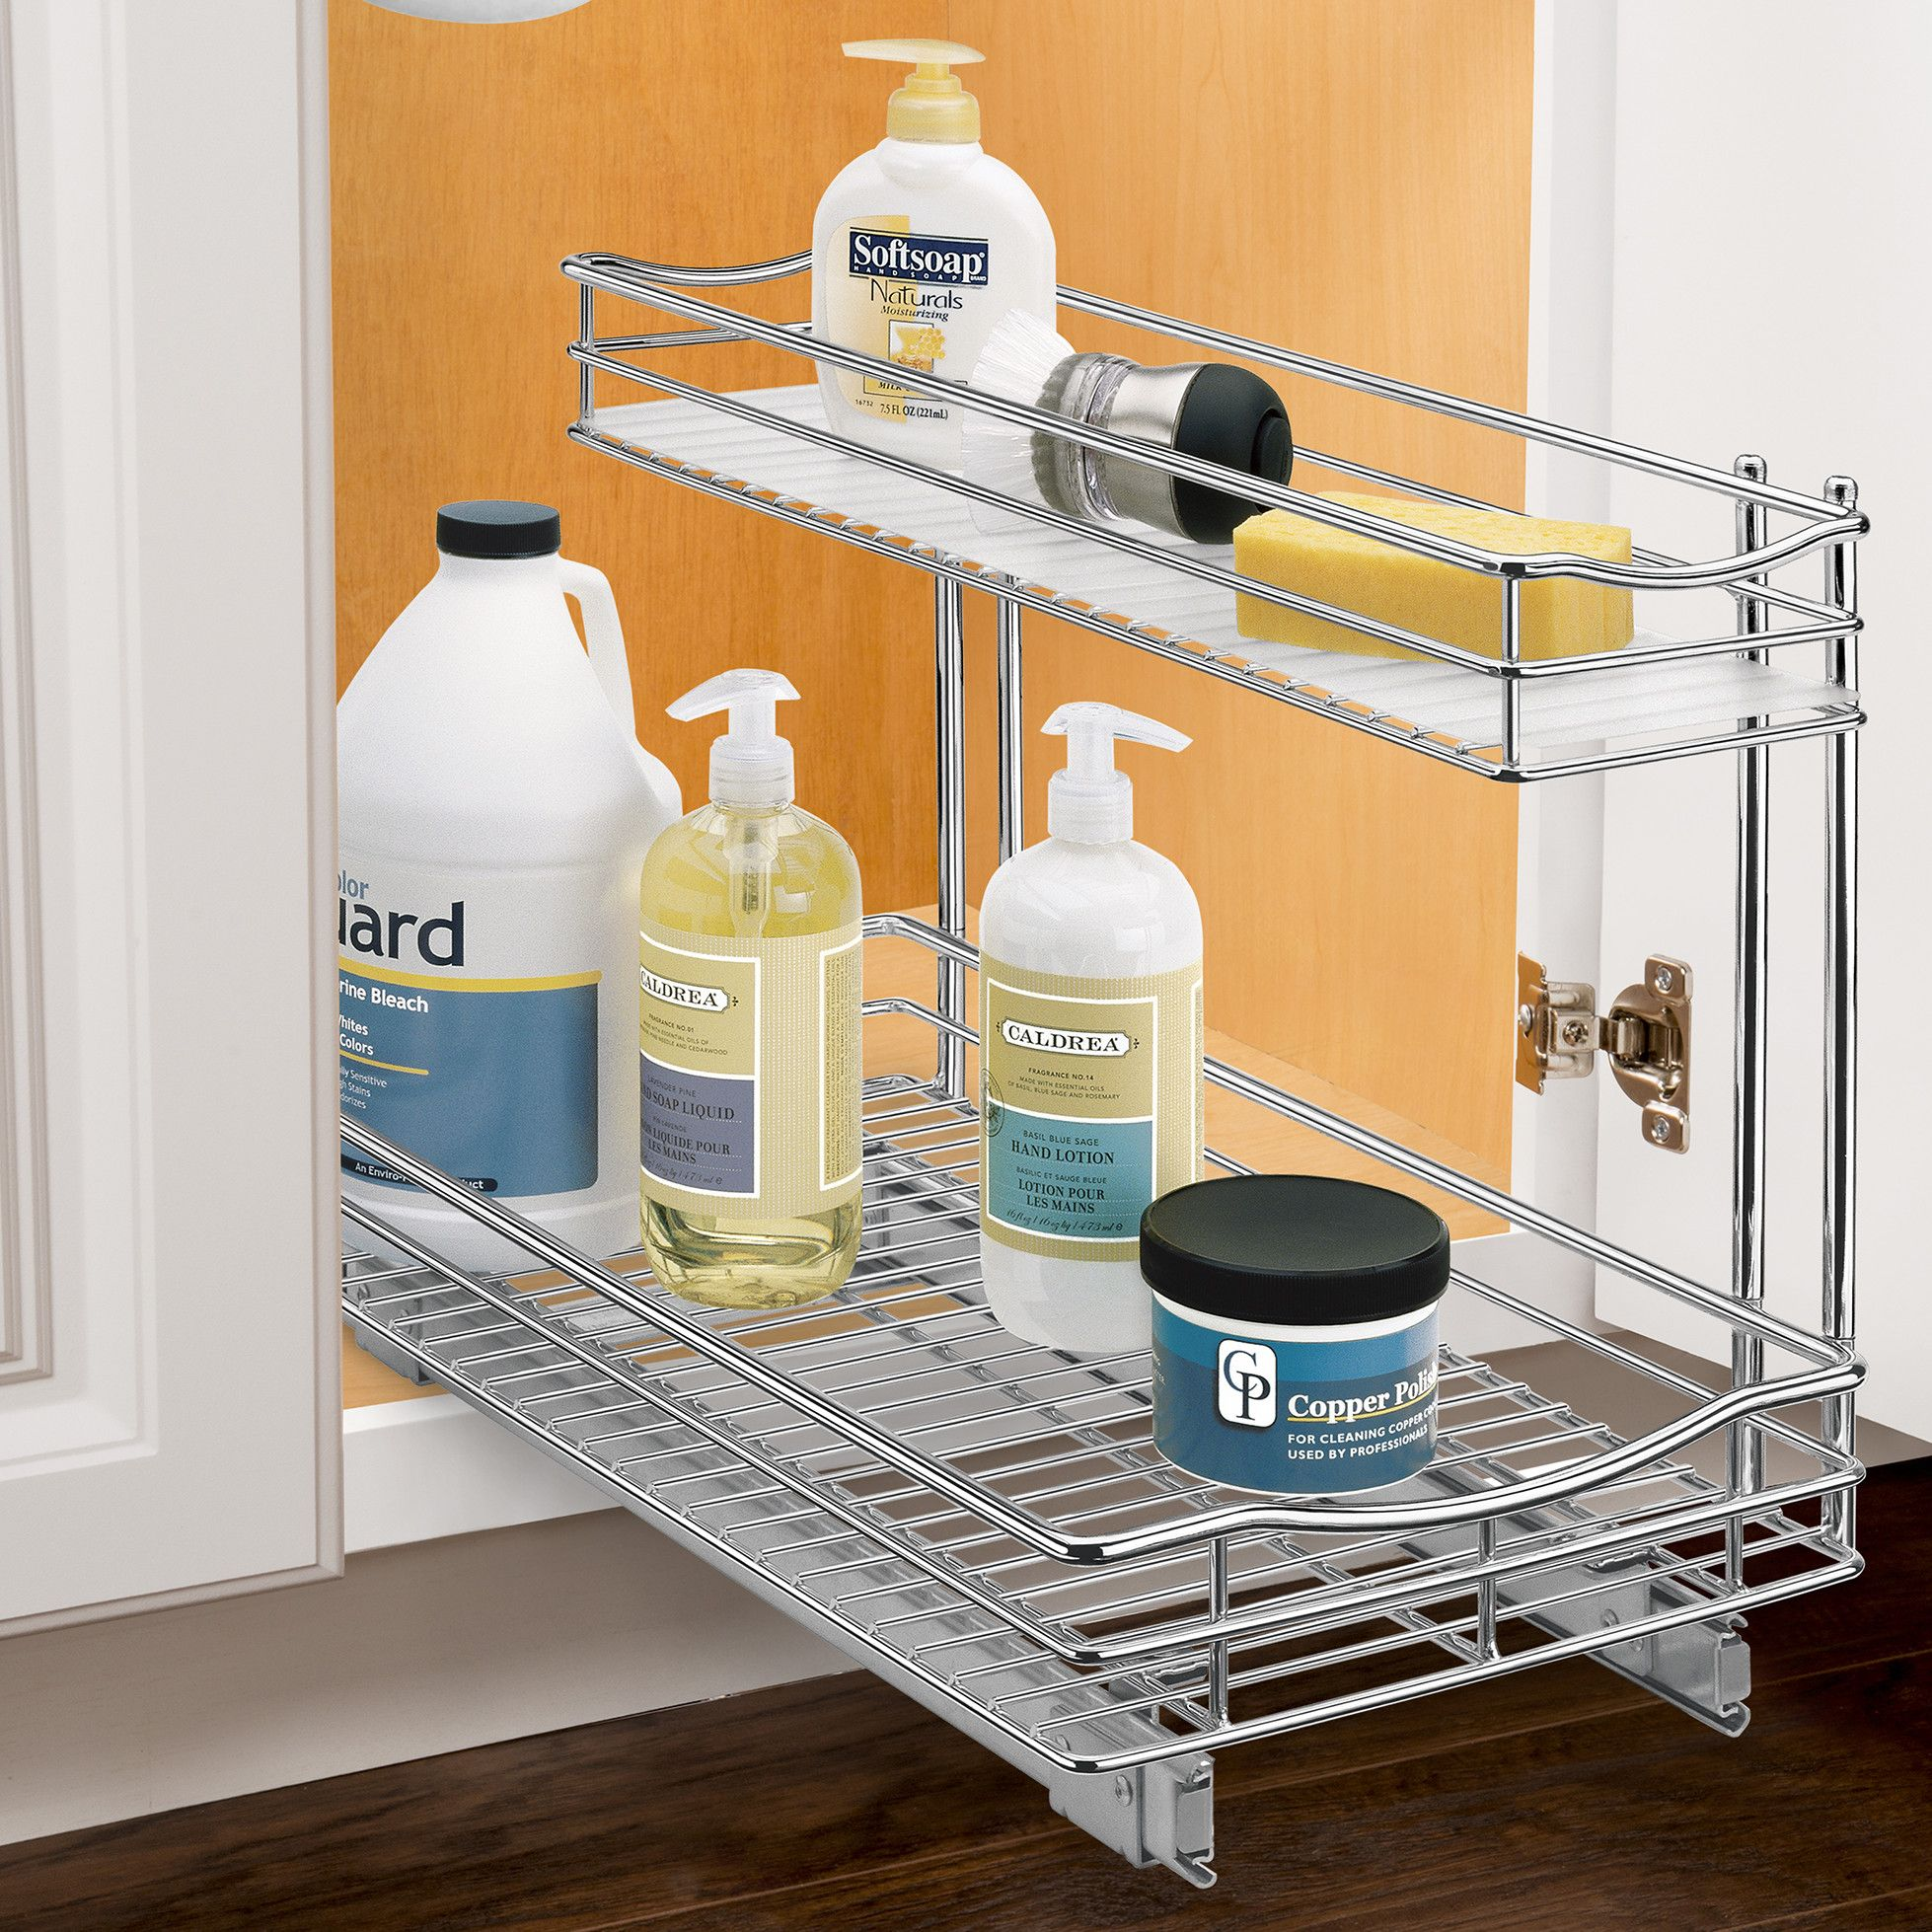 Lynk® Roll Out Under Sink Cabinet Organizer - Pull Out Two Tier Sliding Shelf - 11.5 in. wide x 18 inch deep - Chrome